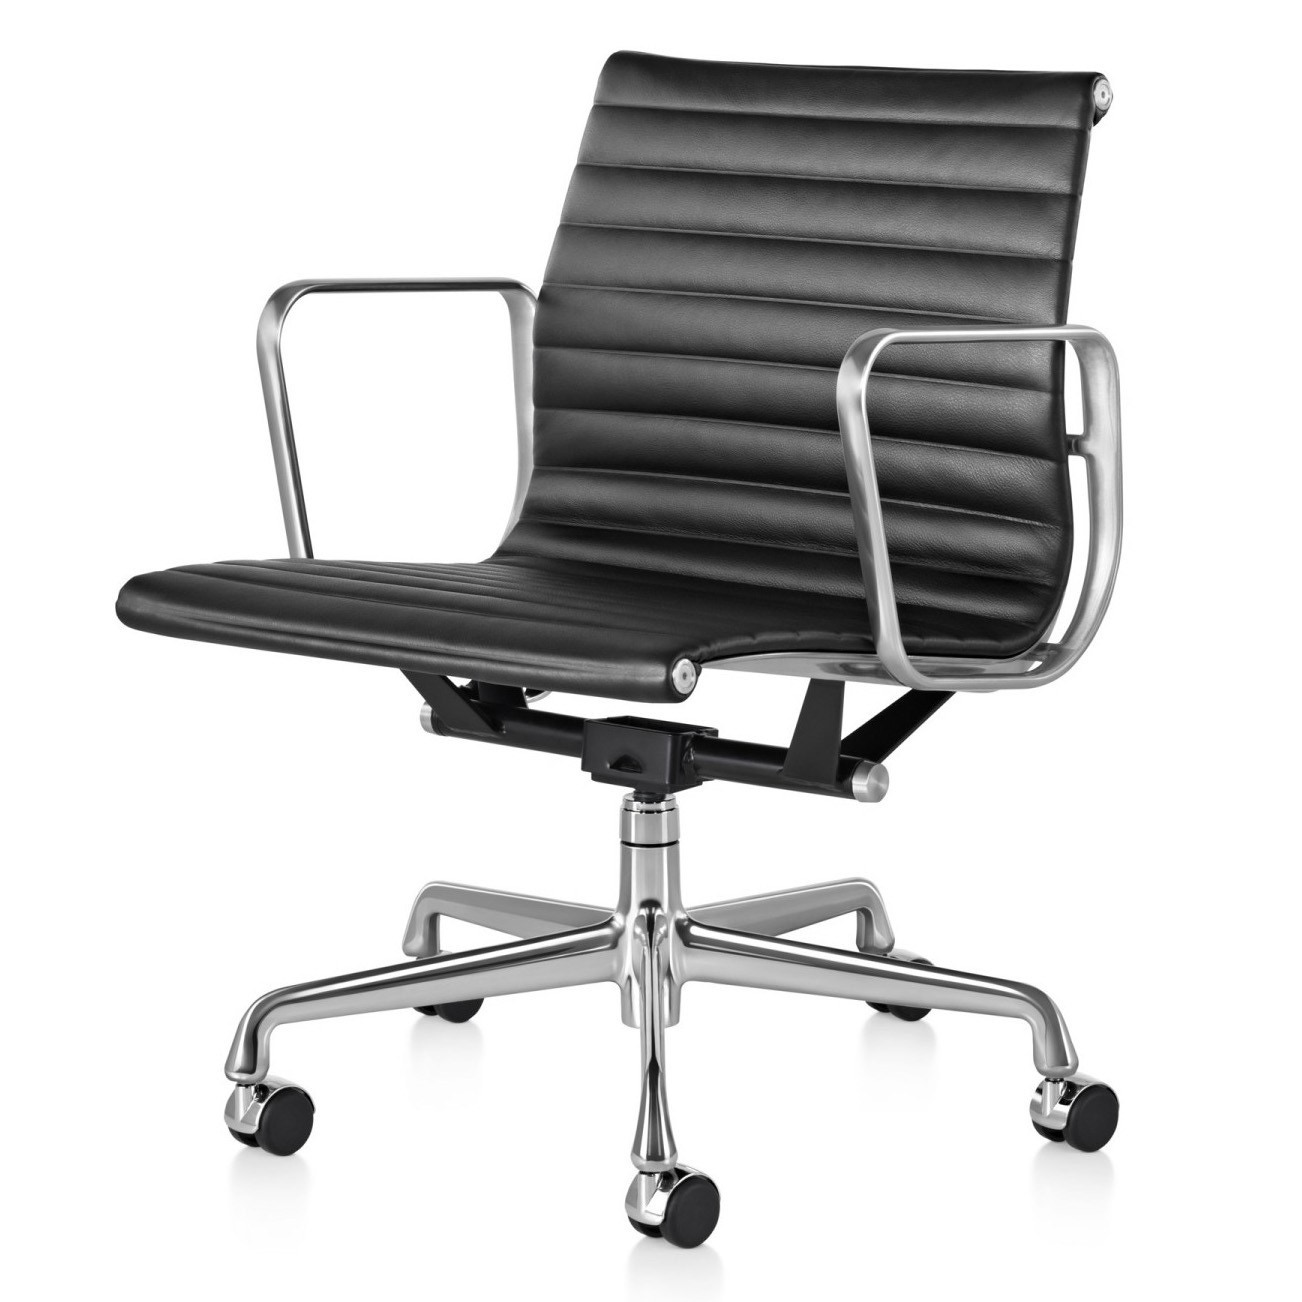 herman miller eames chair. Herman Miller Eames Chair L